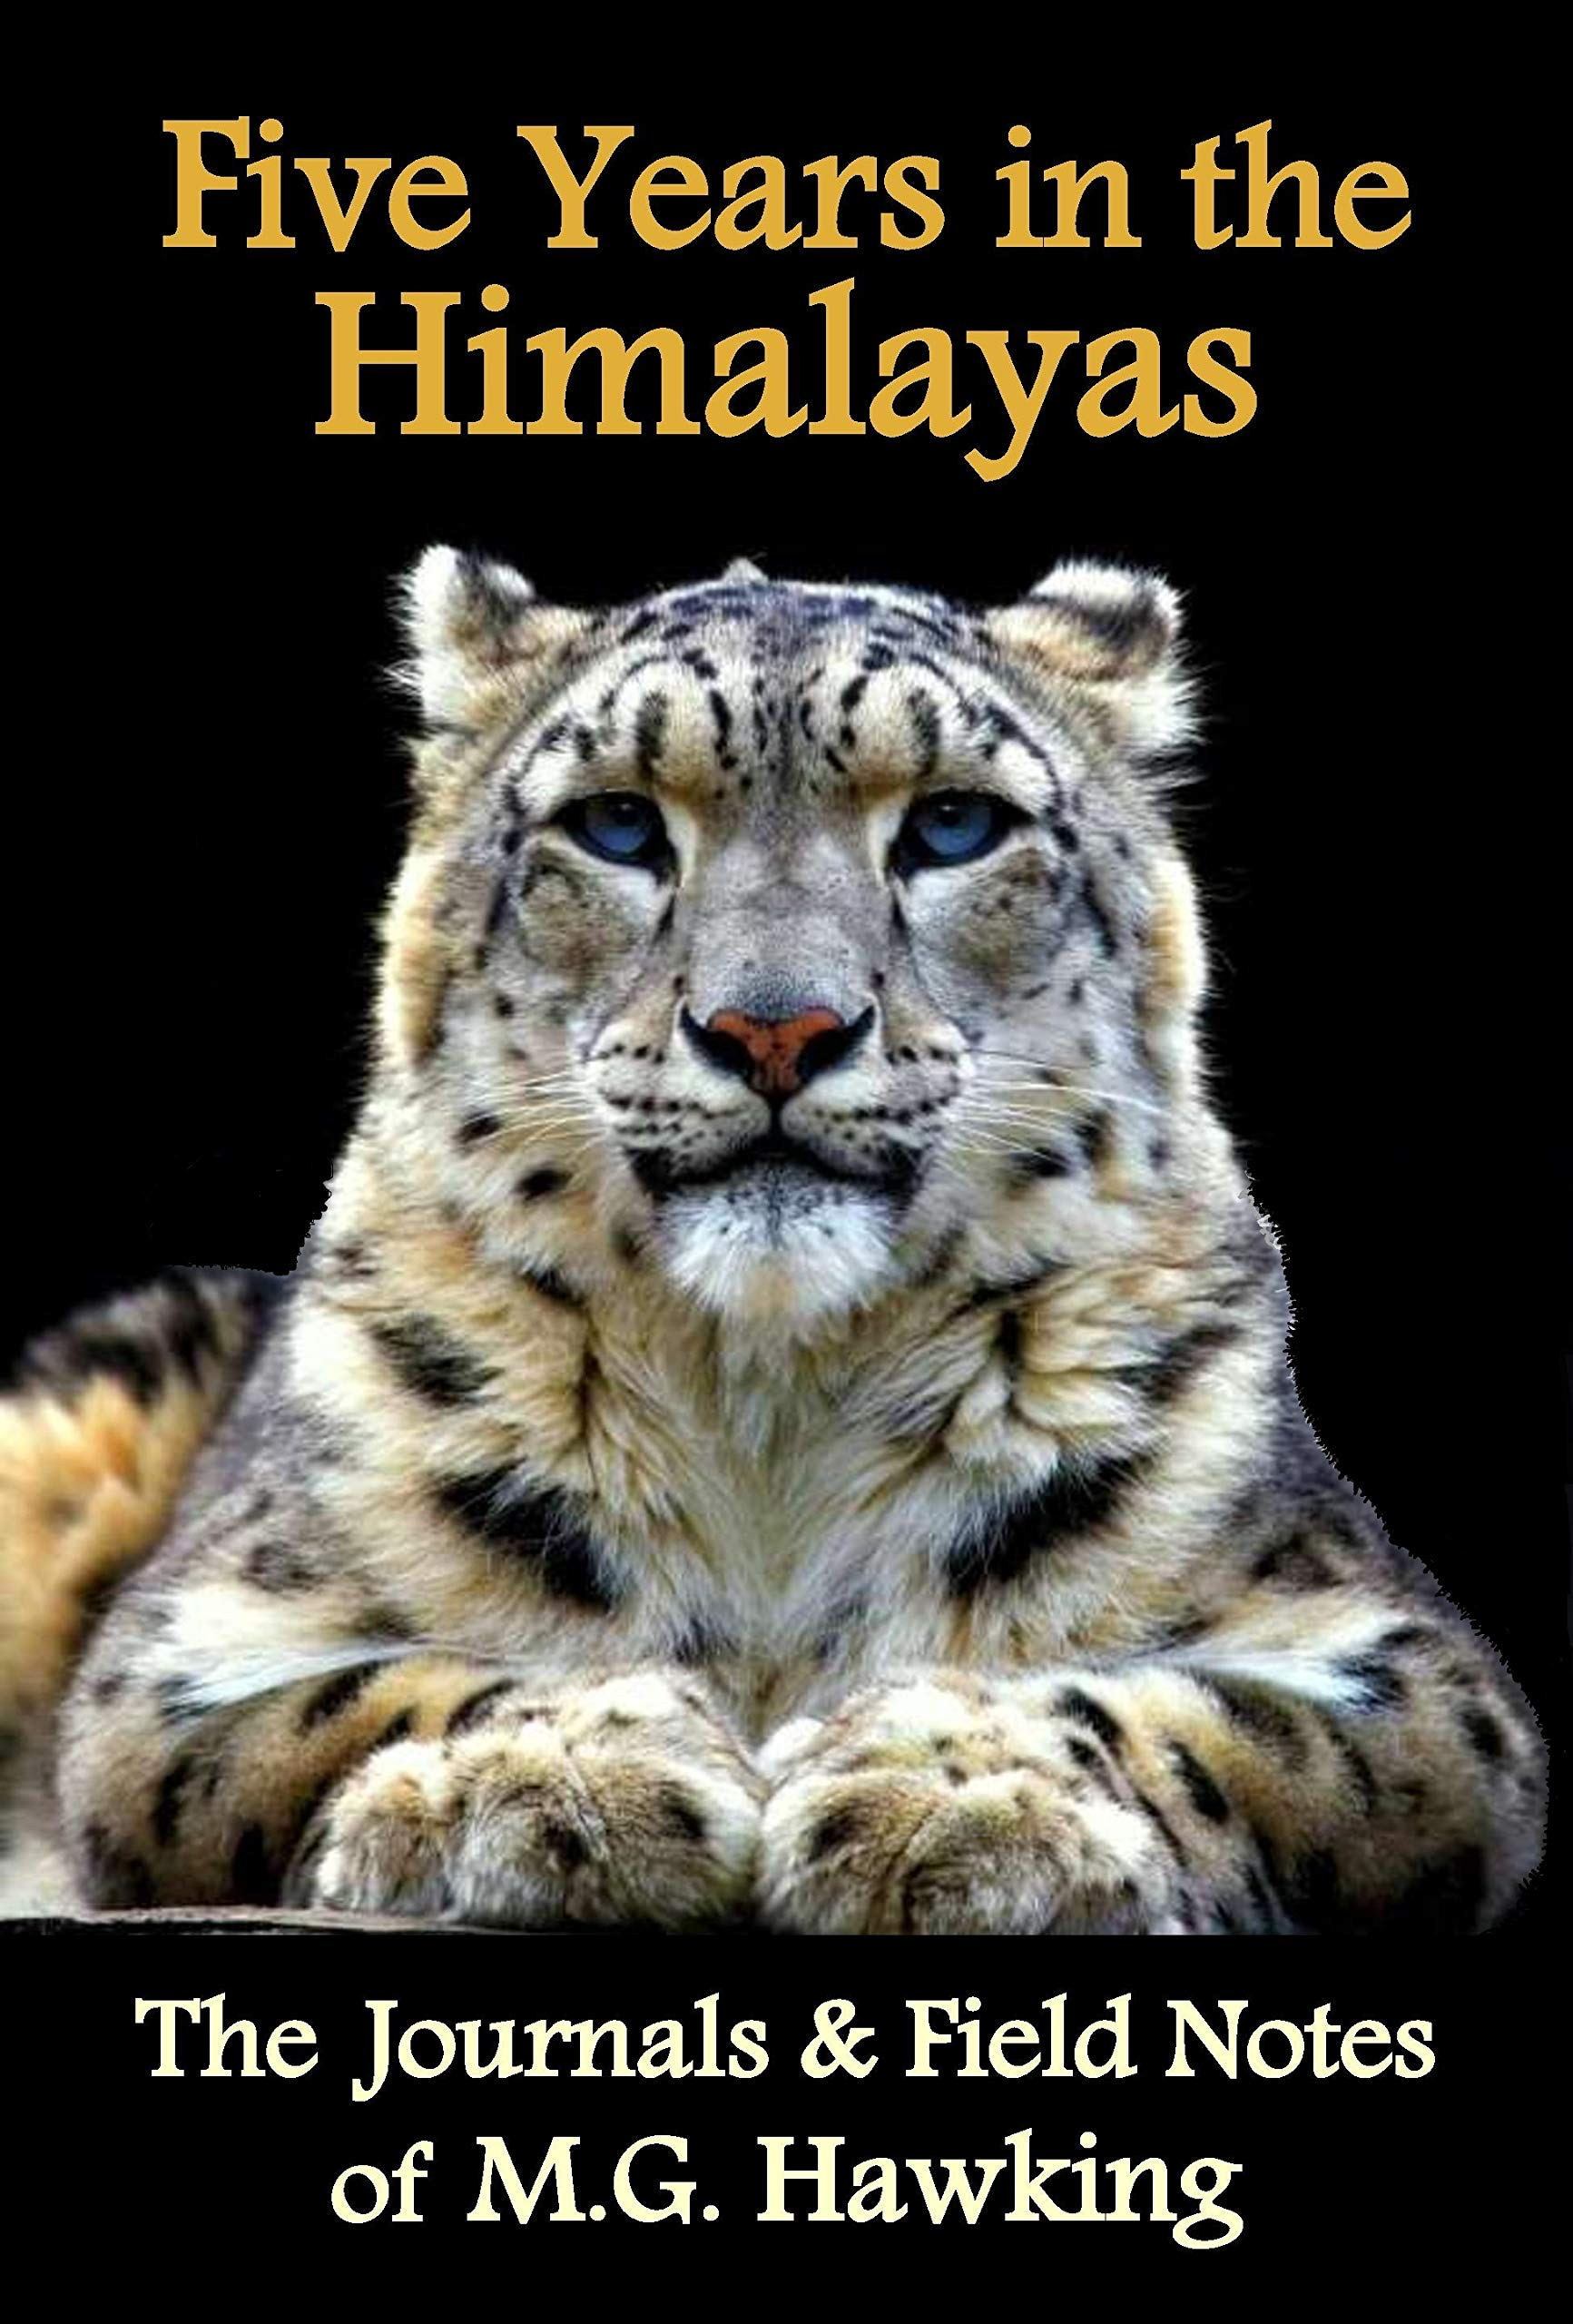 Five Years In The Himalayas The Journals And Field Notes Of Explorer M.G. Hawking  English Edition